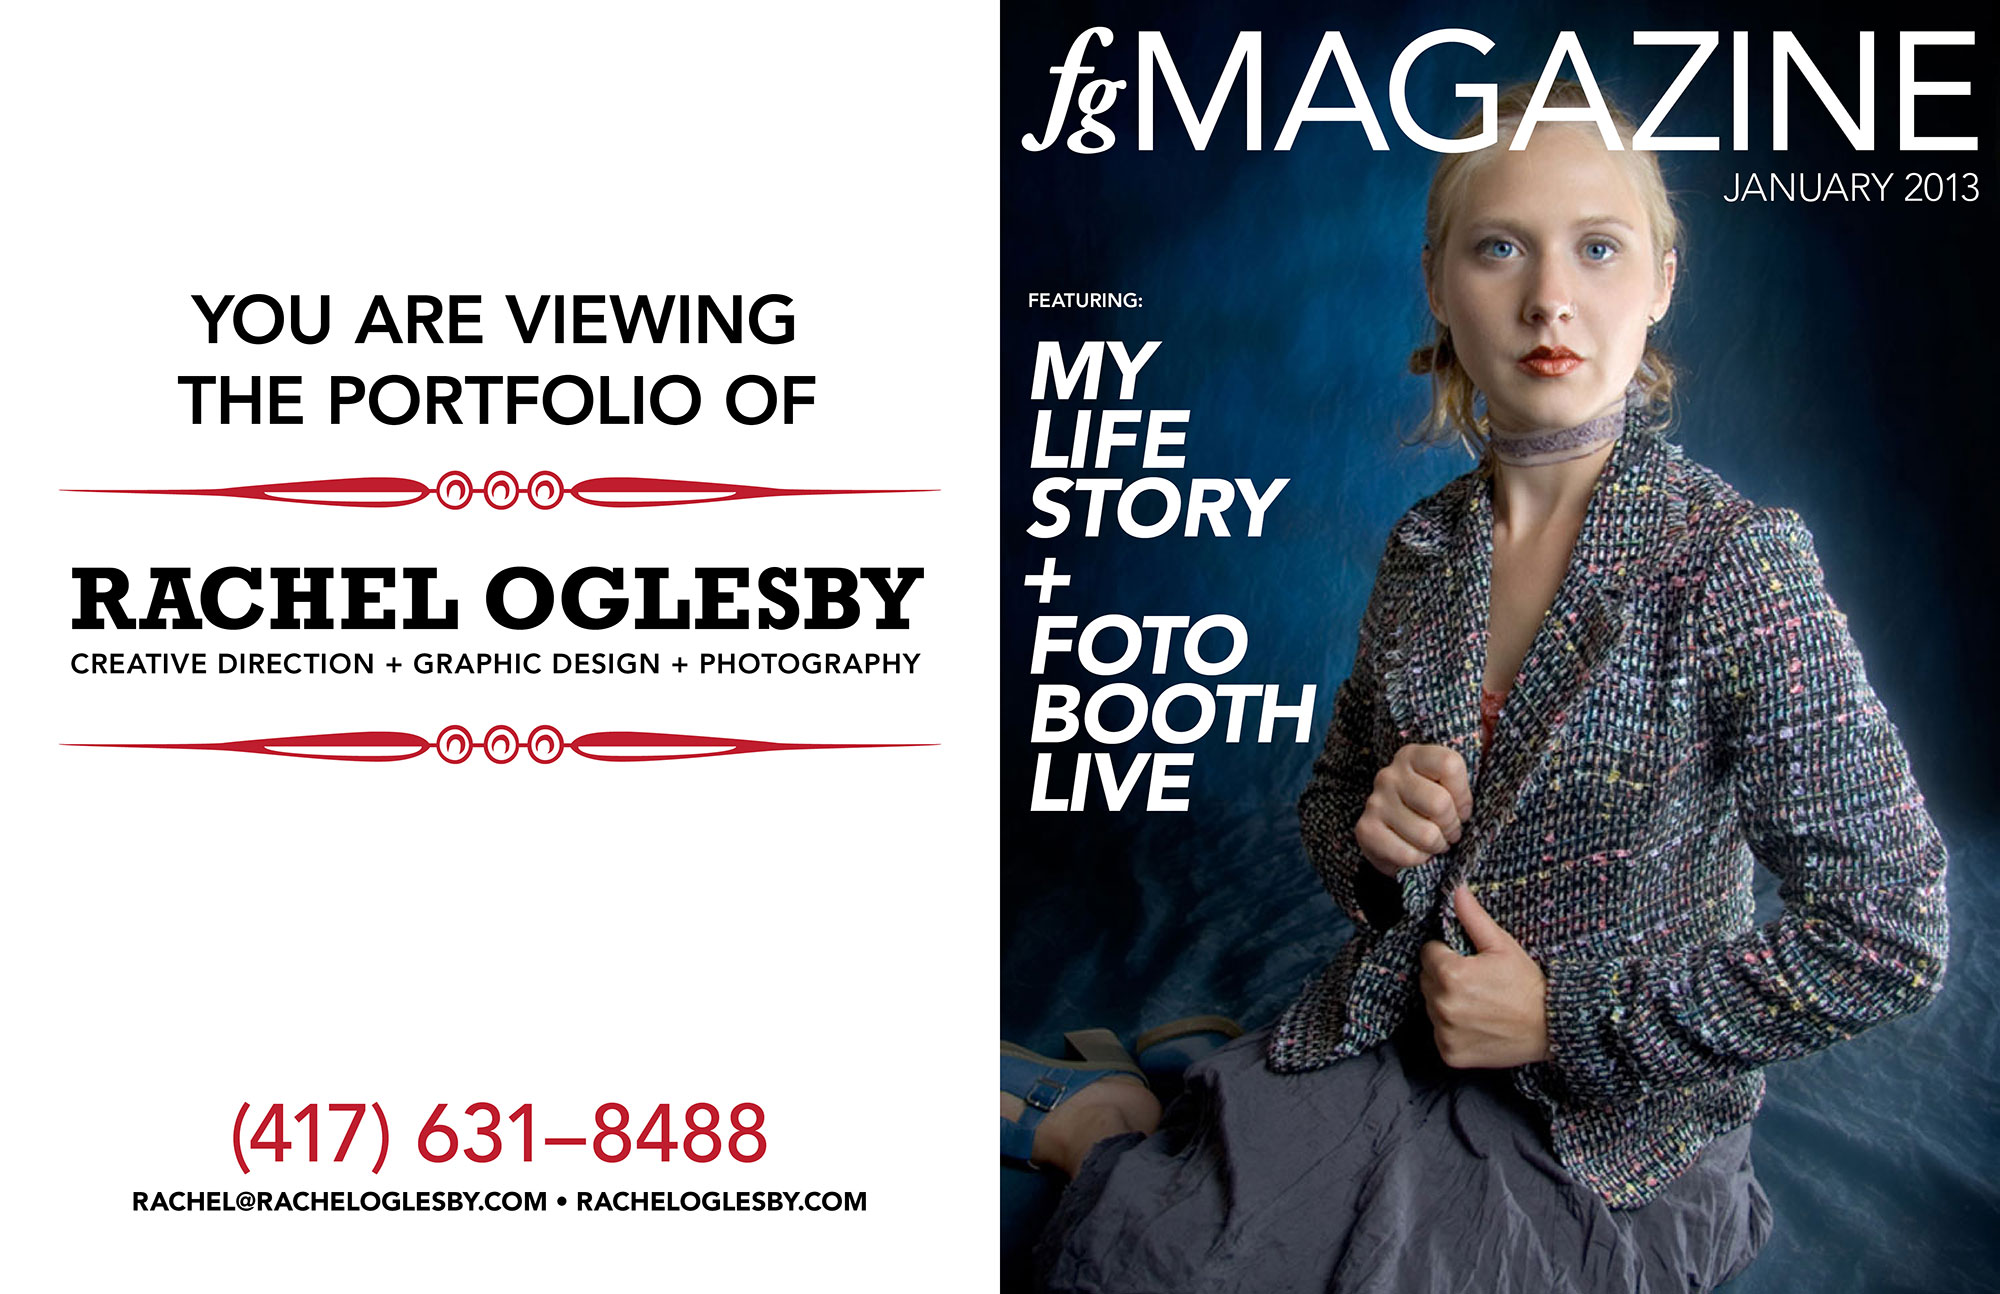 How To Create A Career Portfolio 9 Steps With Pictures Rachel Oglesby Art Design Photography